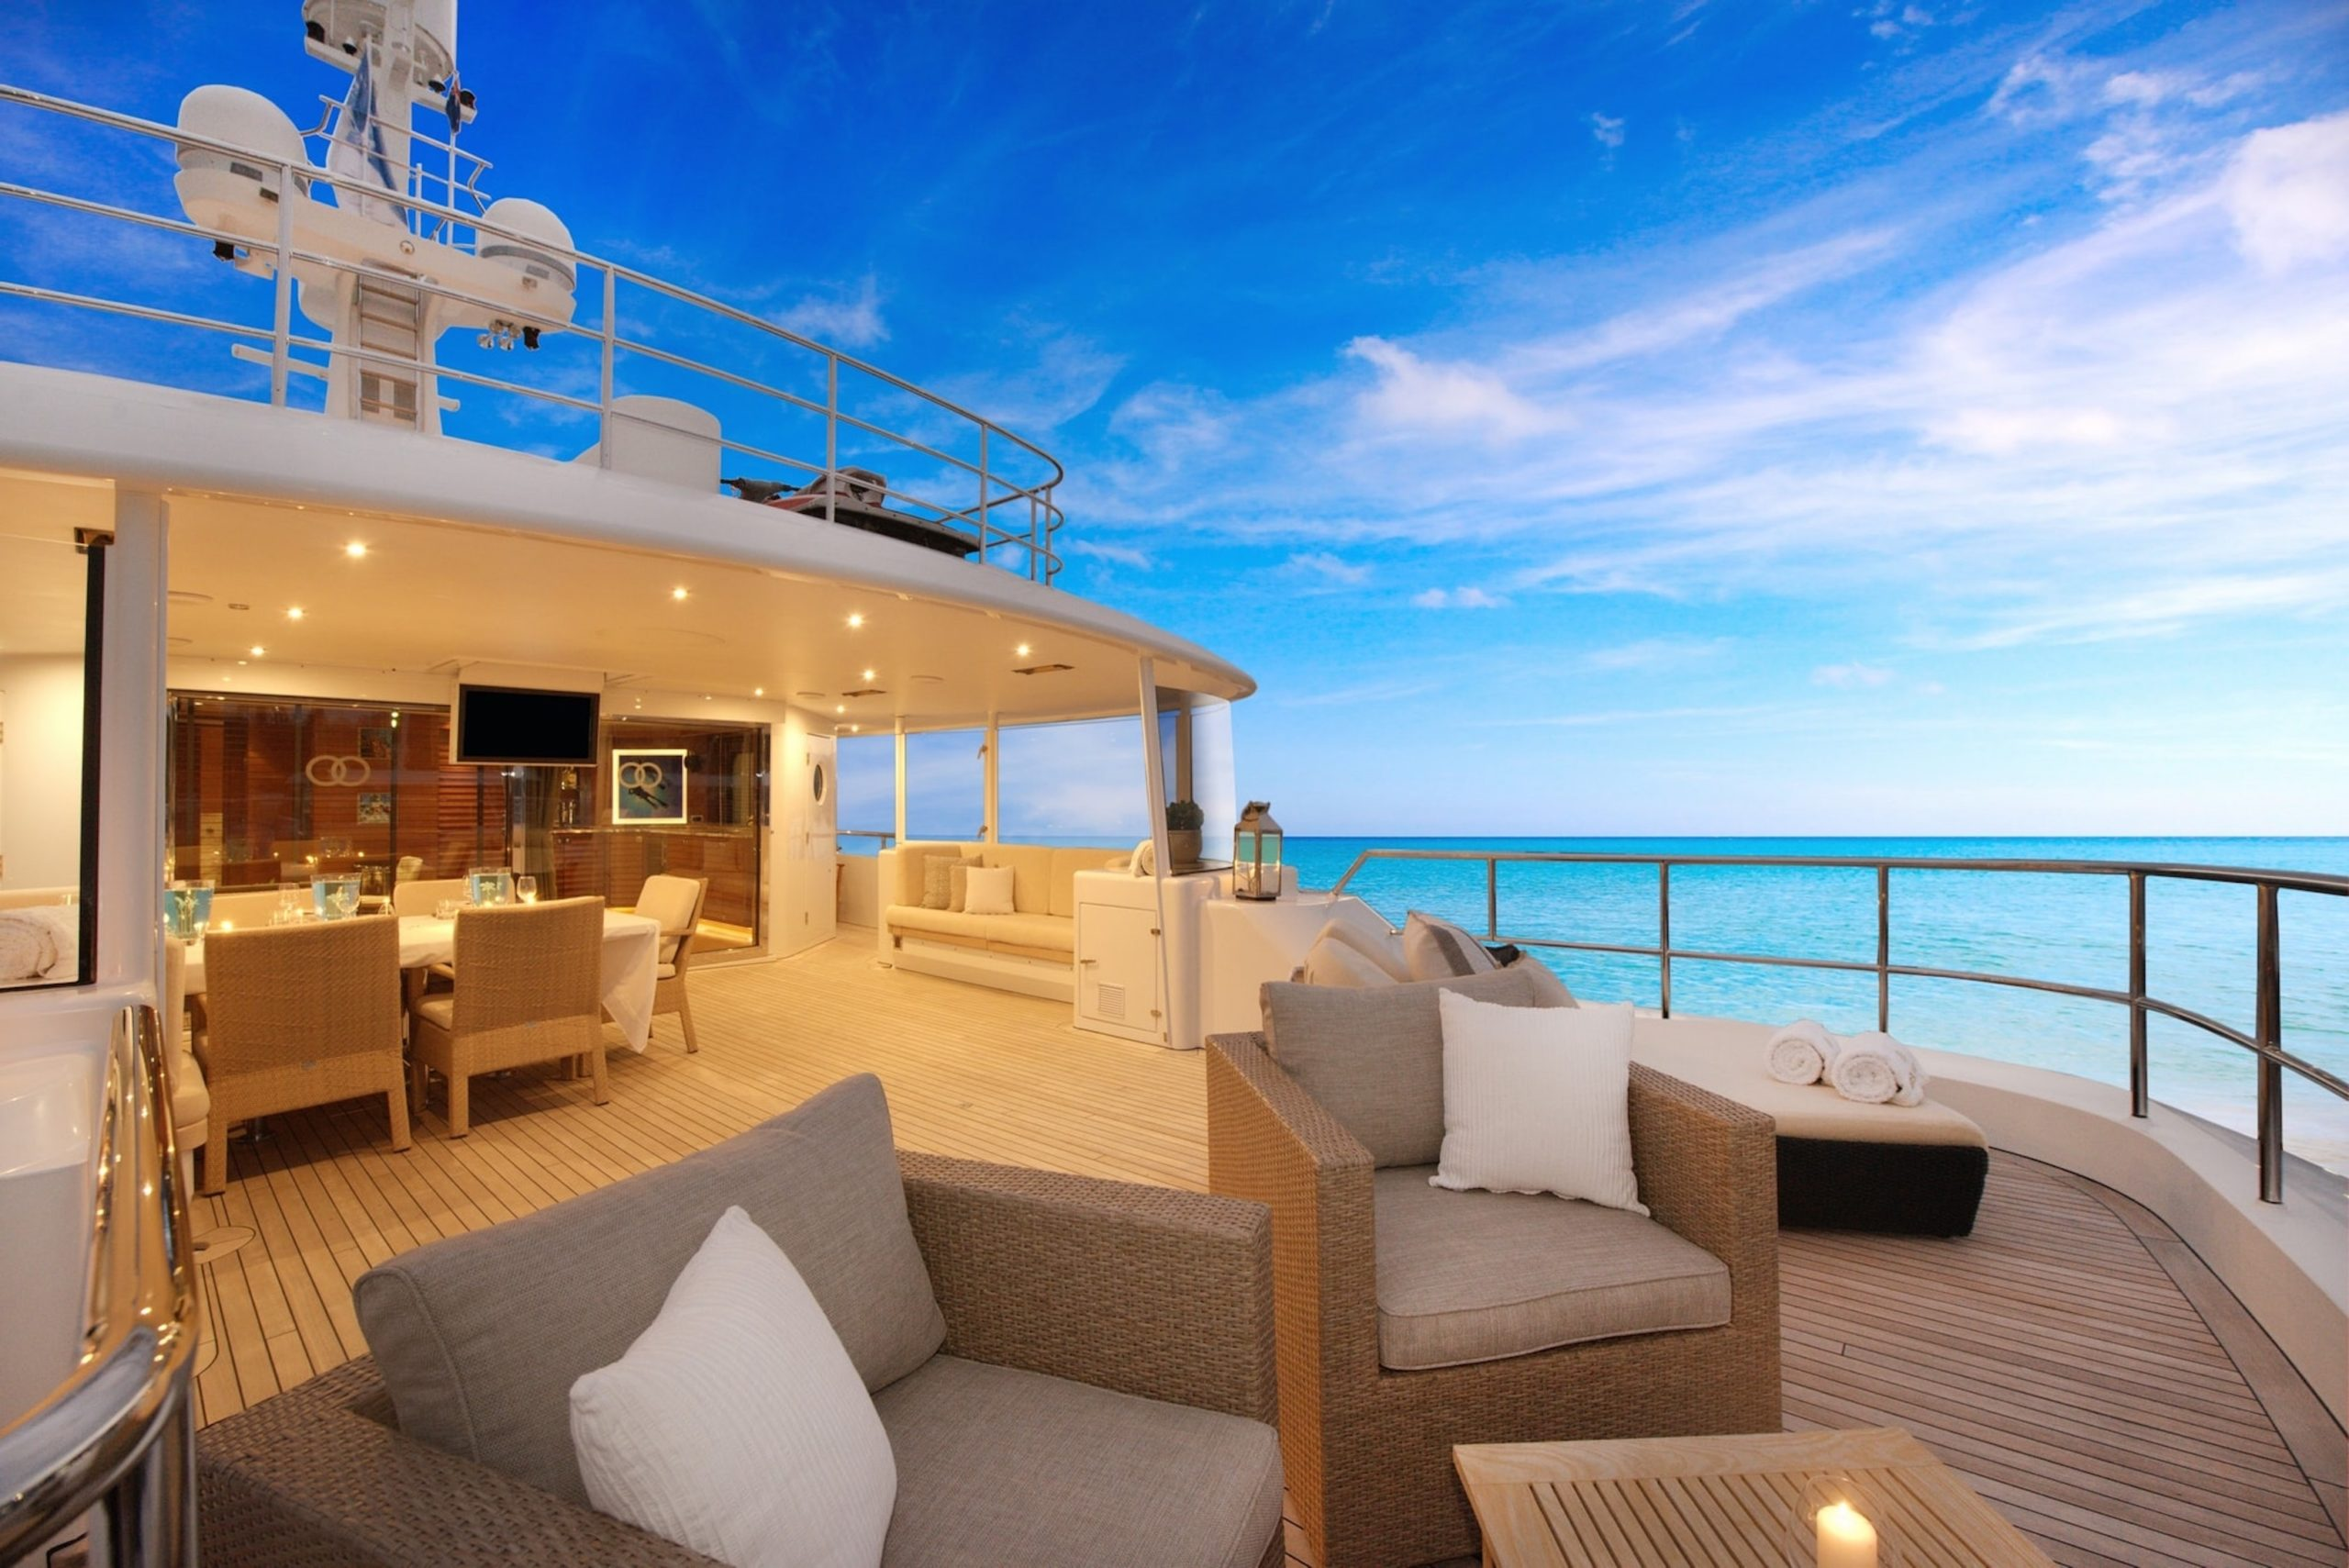 Expedition-style superyacht perfectly suited to her cruising area